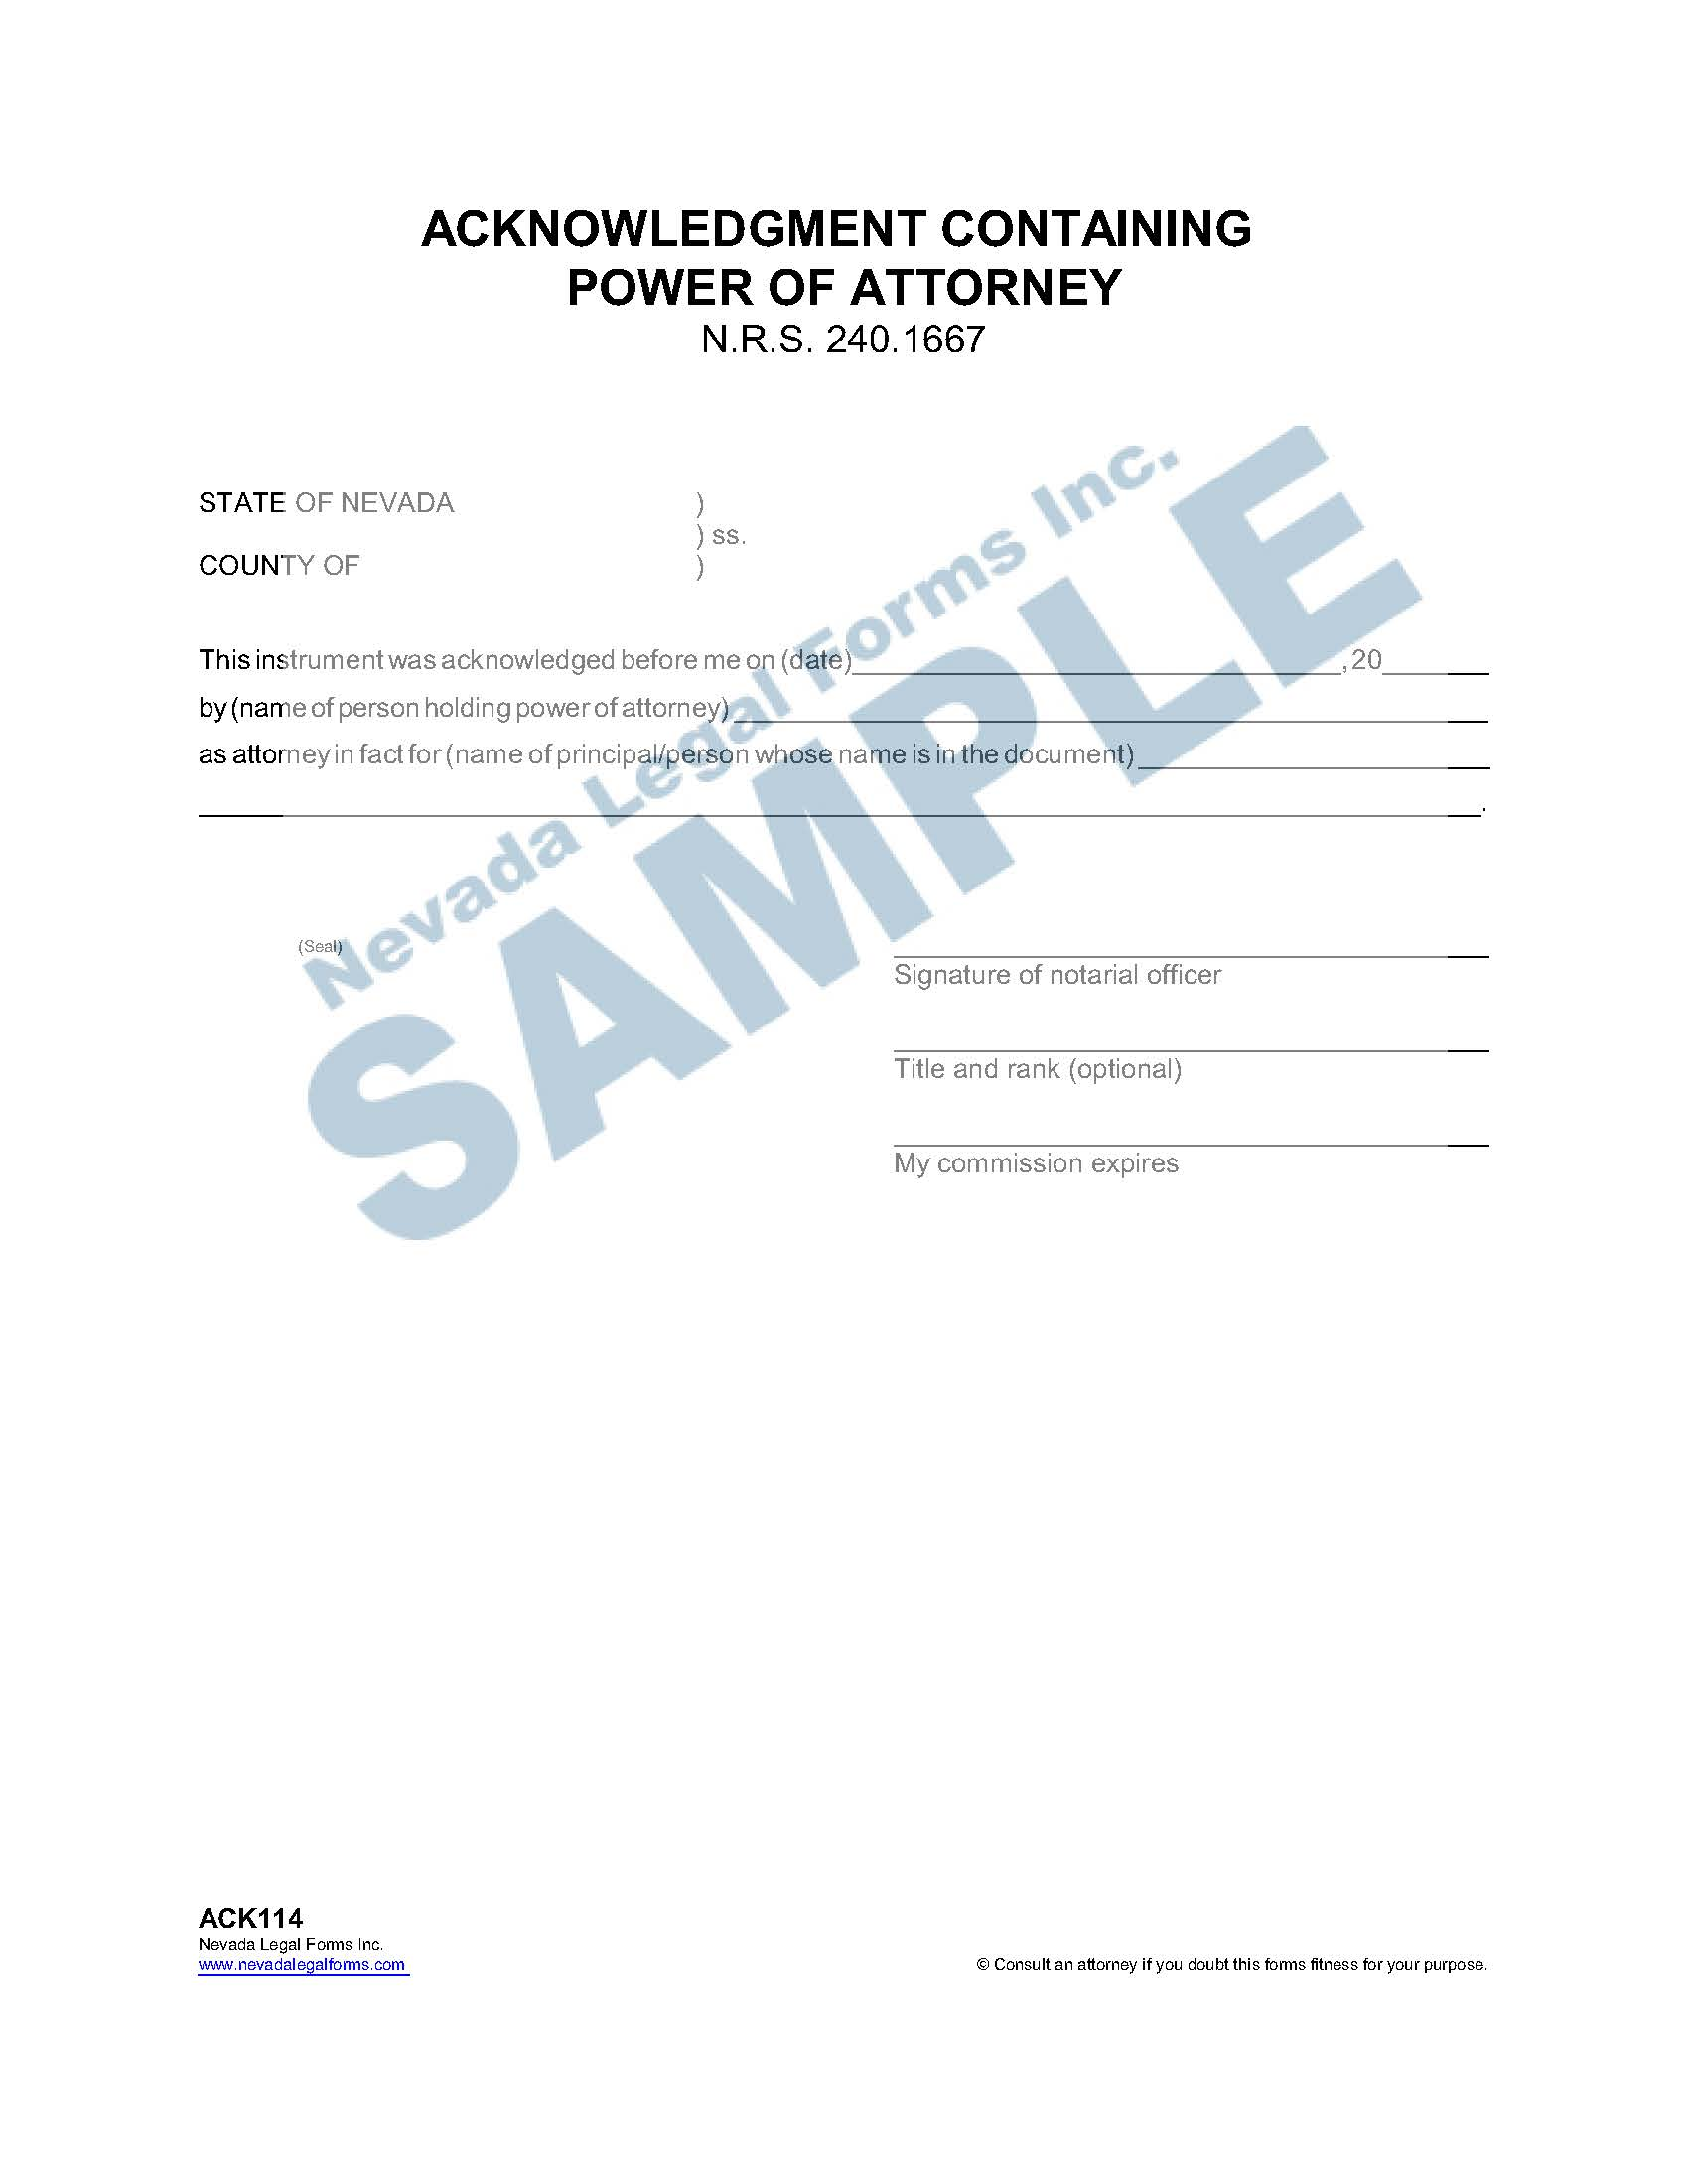 Acknowledgment Containing Power Of Attorney